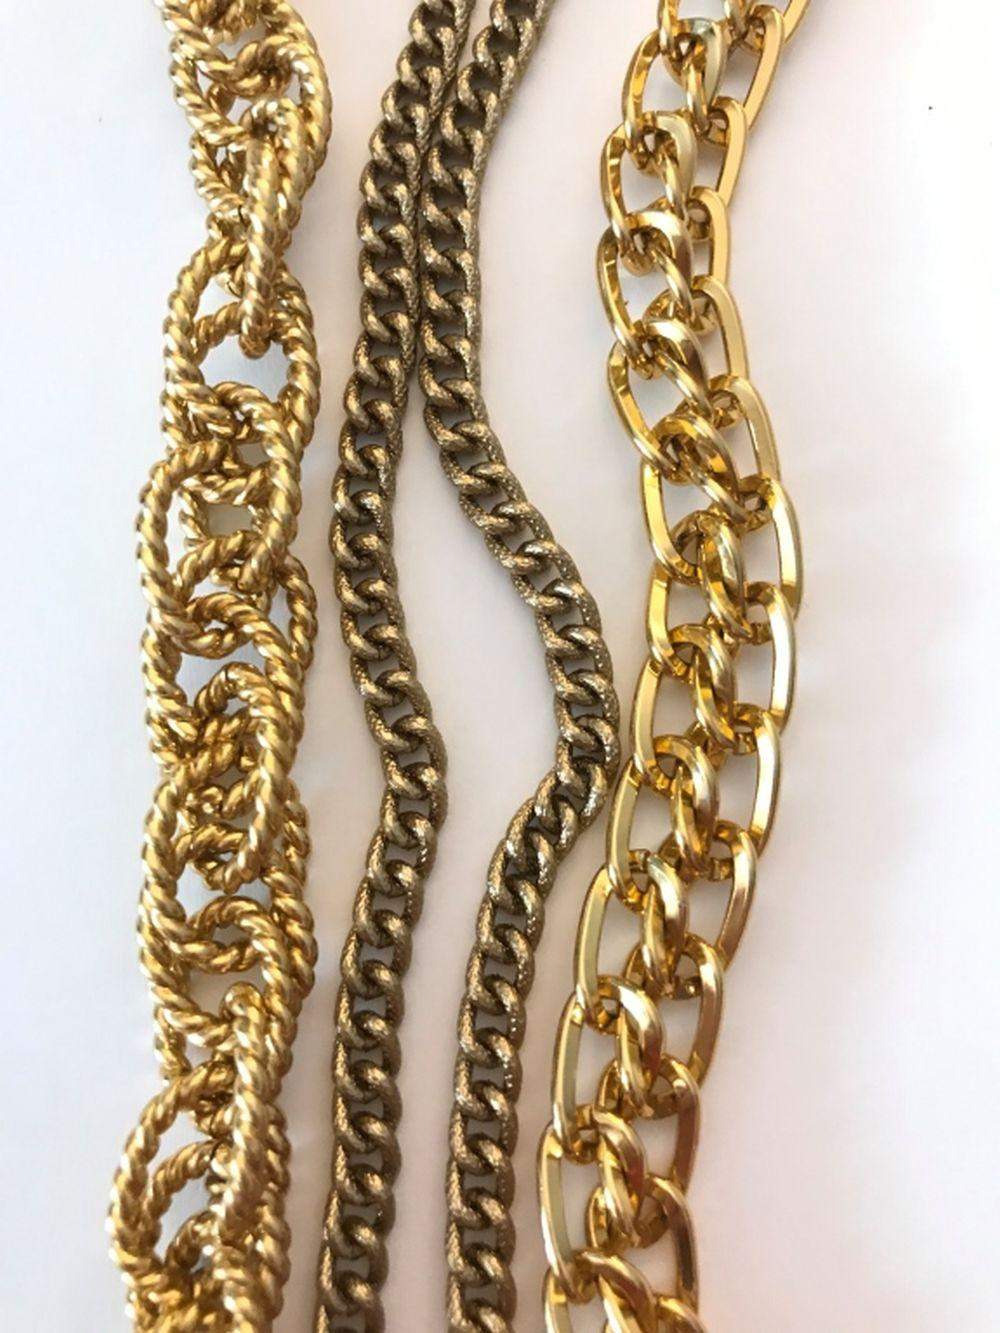 3 THICK GOLD TONE CHAIN/ NECKLACES